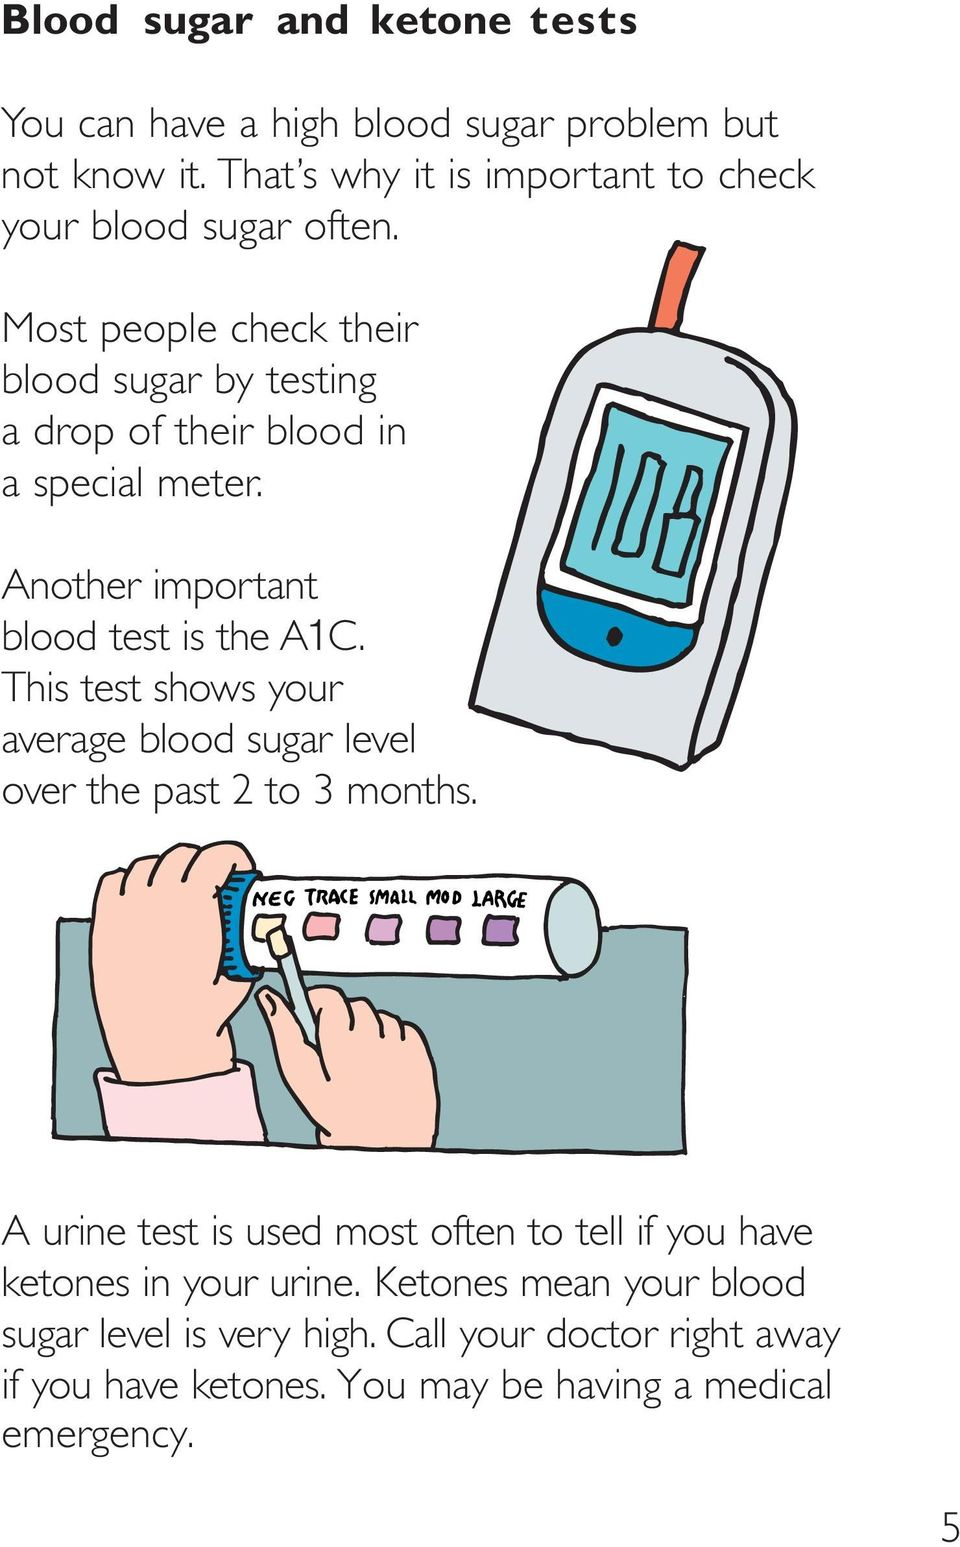 Most people check their blood sugar by testing a drop of their blood in a special meter. Another important blood test is the A1C.